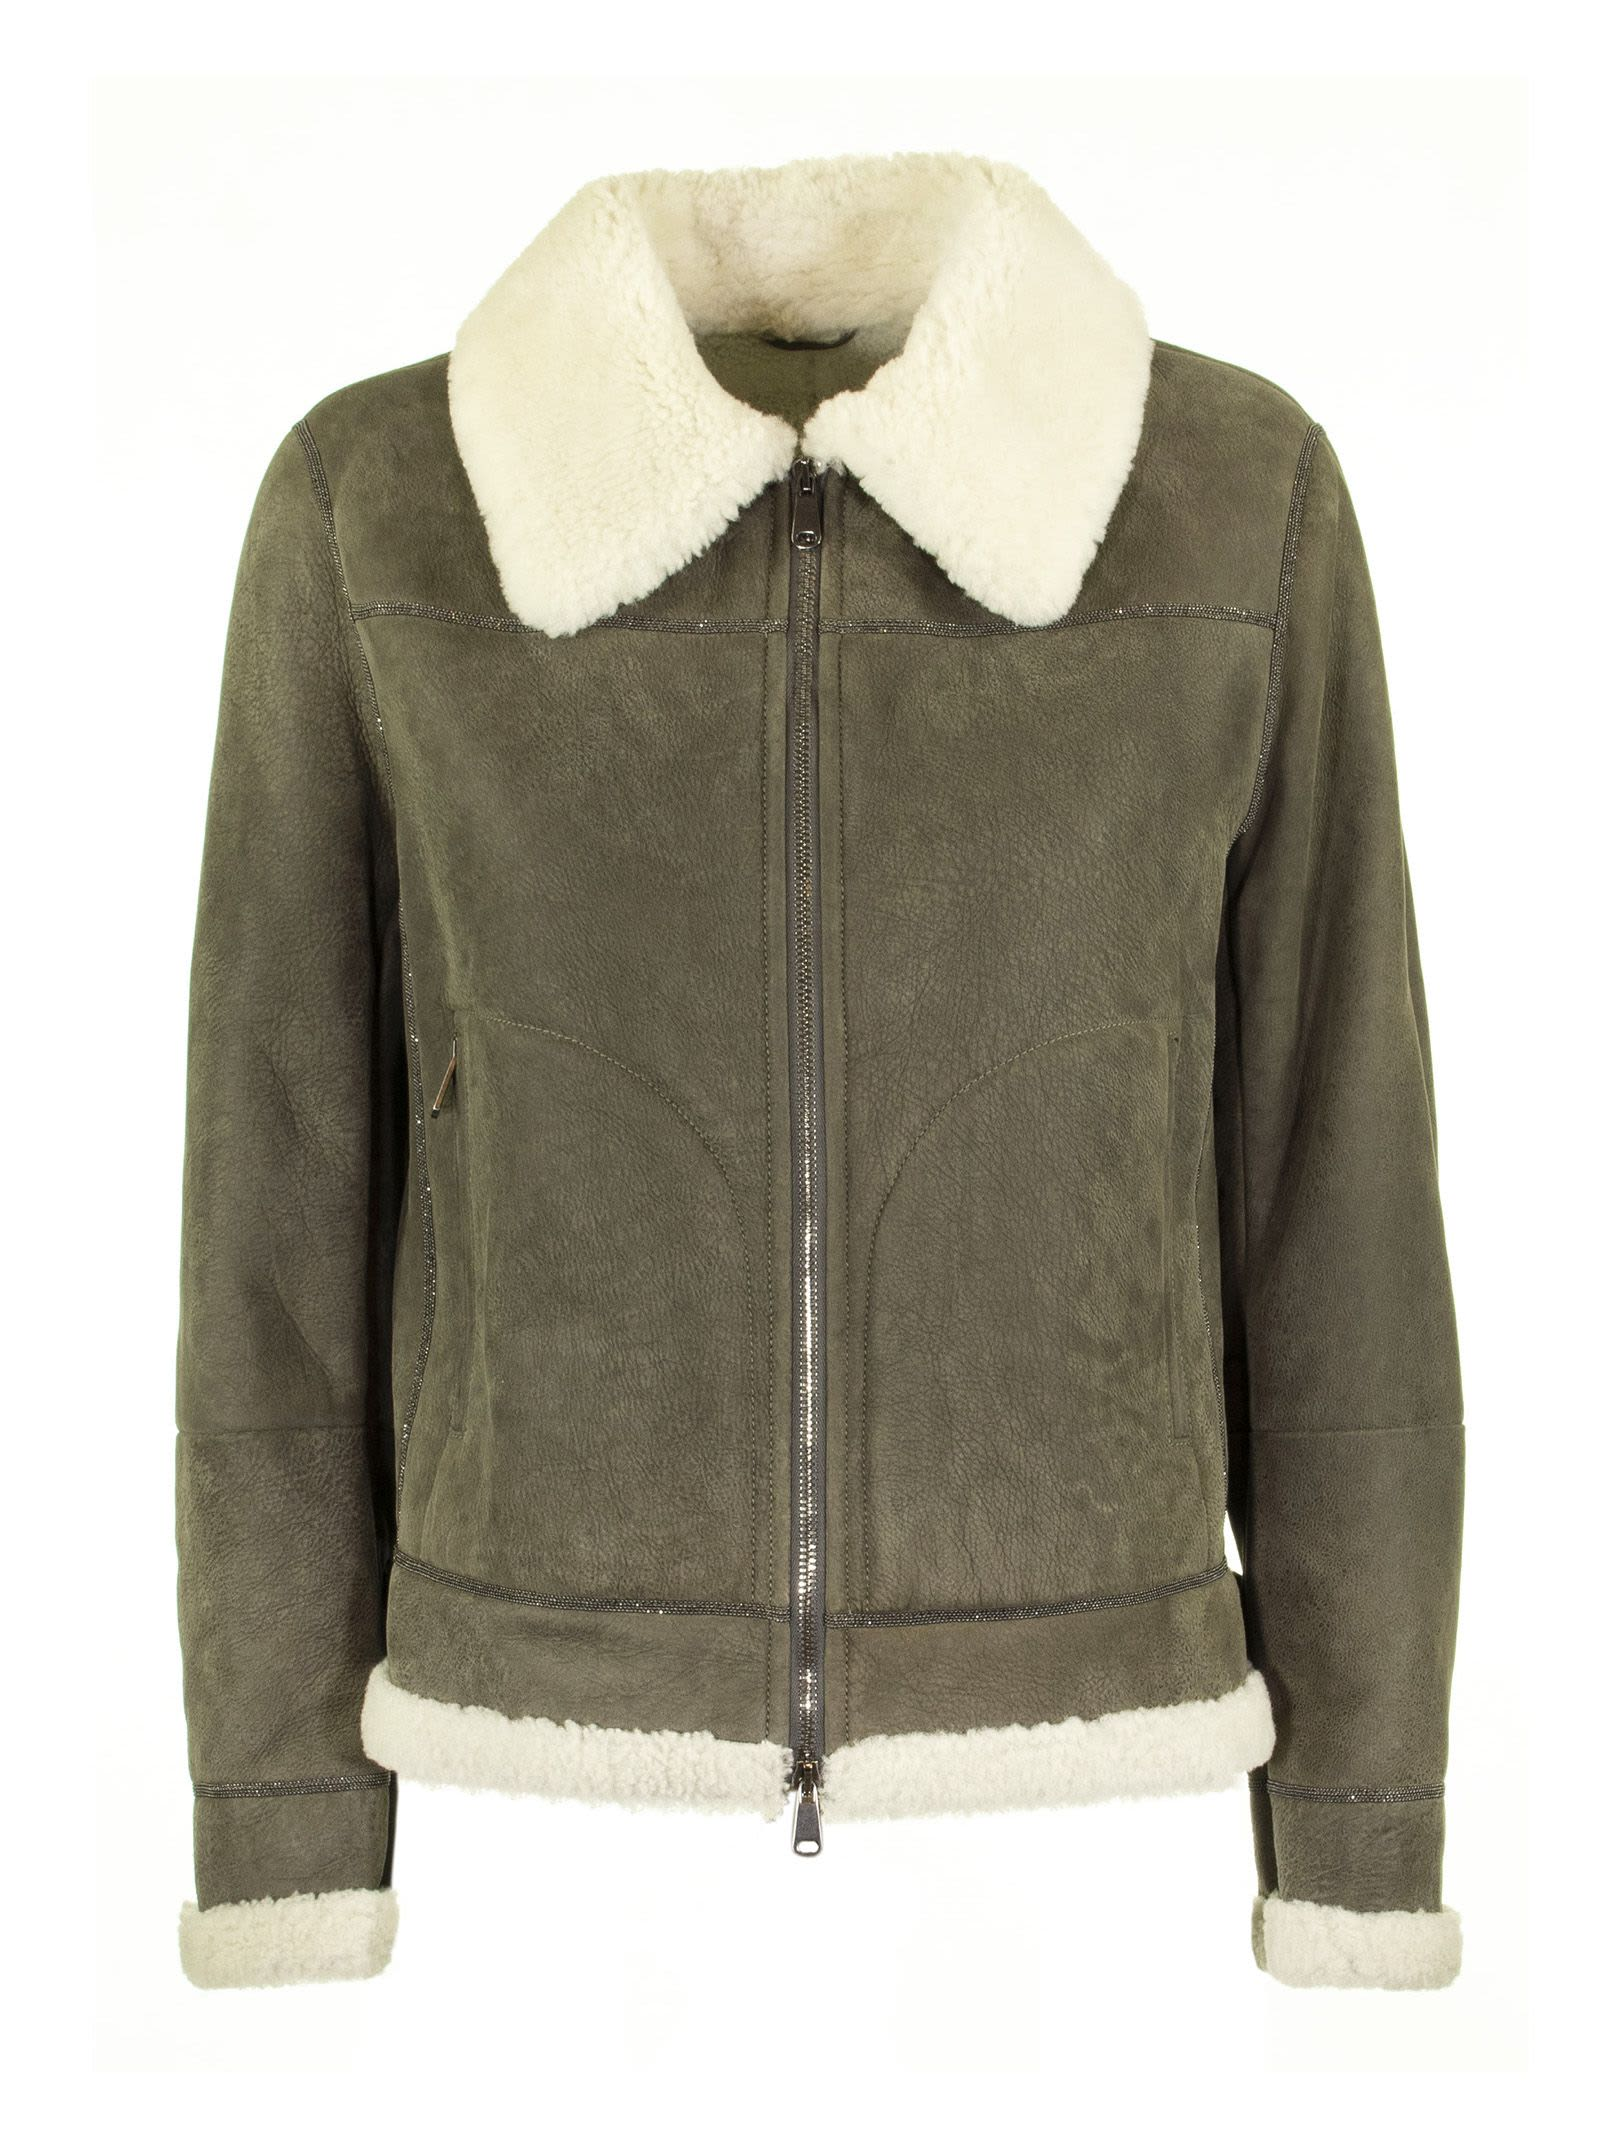 Brunello Cucinelli Matte Aviator Shearling Outerwear Jacket With Monili